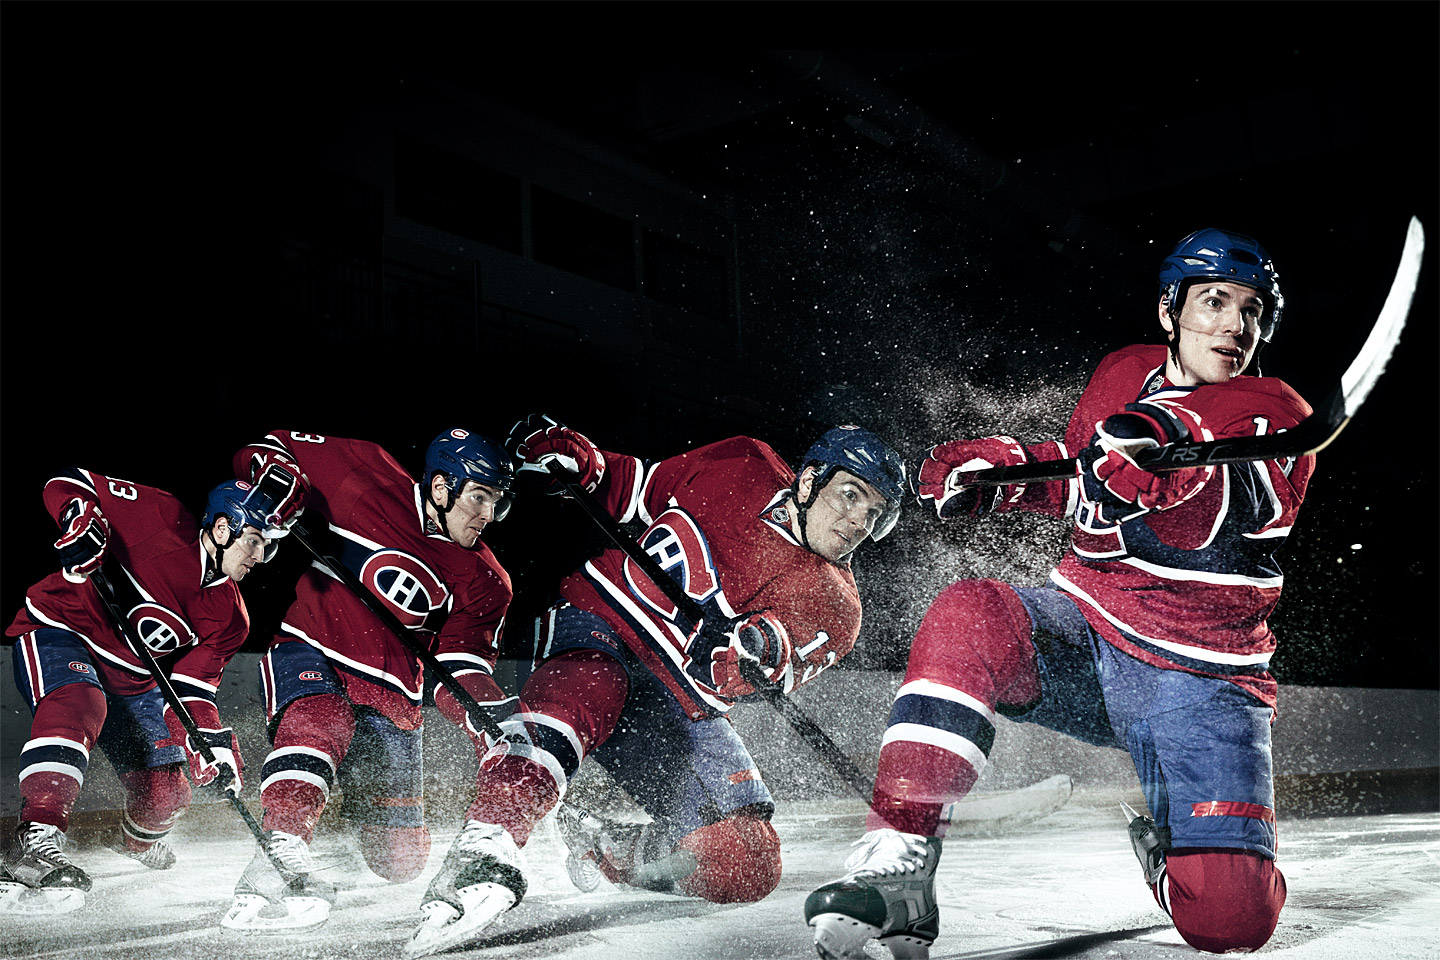 Best mechanics in sports: Snap shot by Mike Cammalleri, Montreal Canadiens